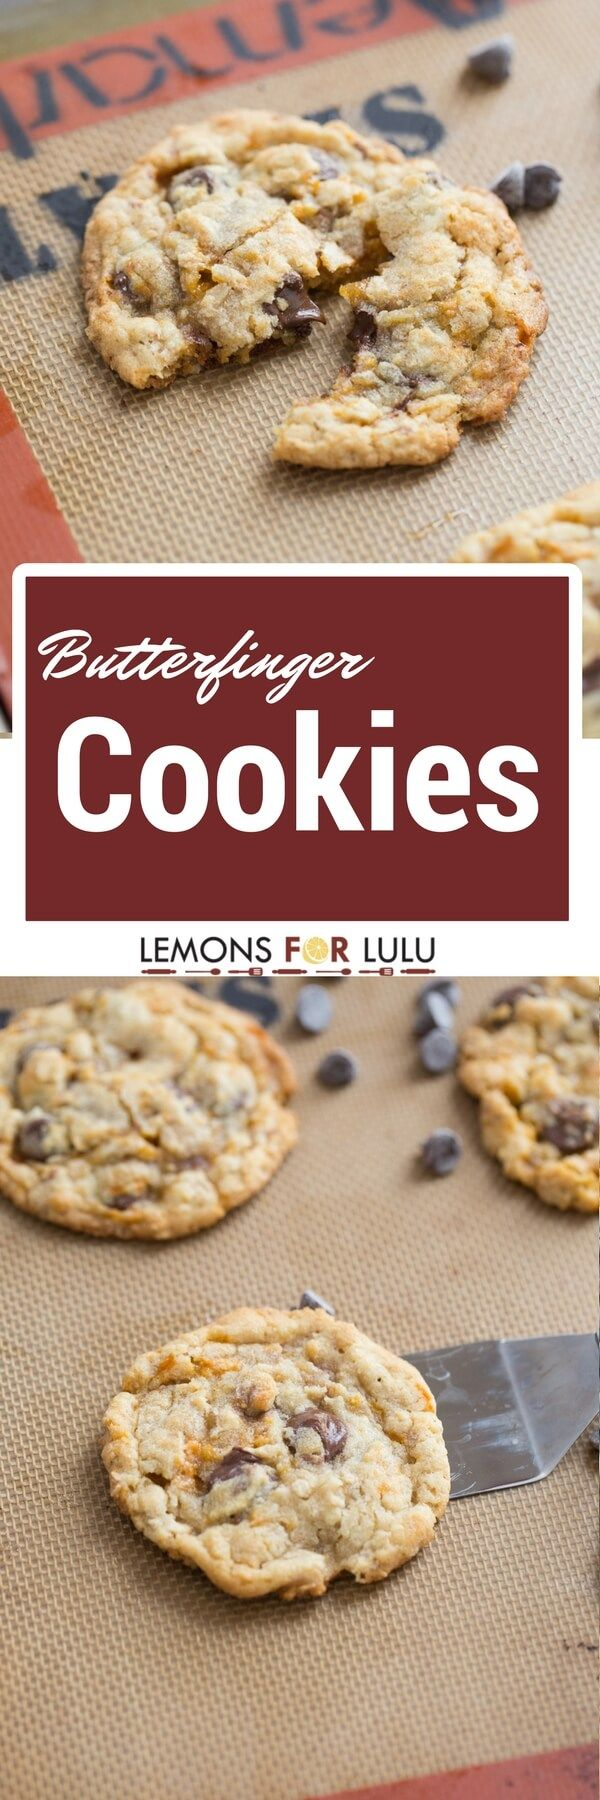 1000+ ideas about Butterfinger Cookies on Pinterest | Cookies, Cookie ...